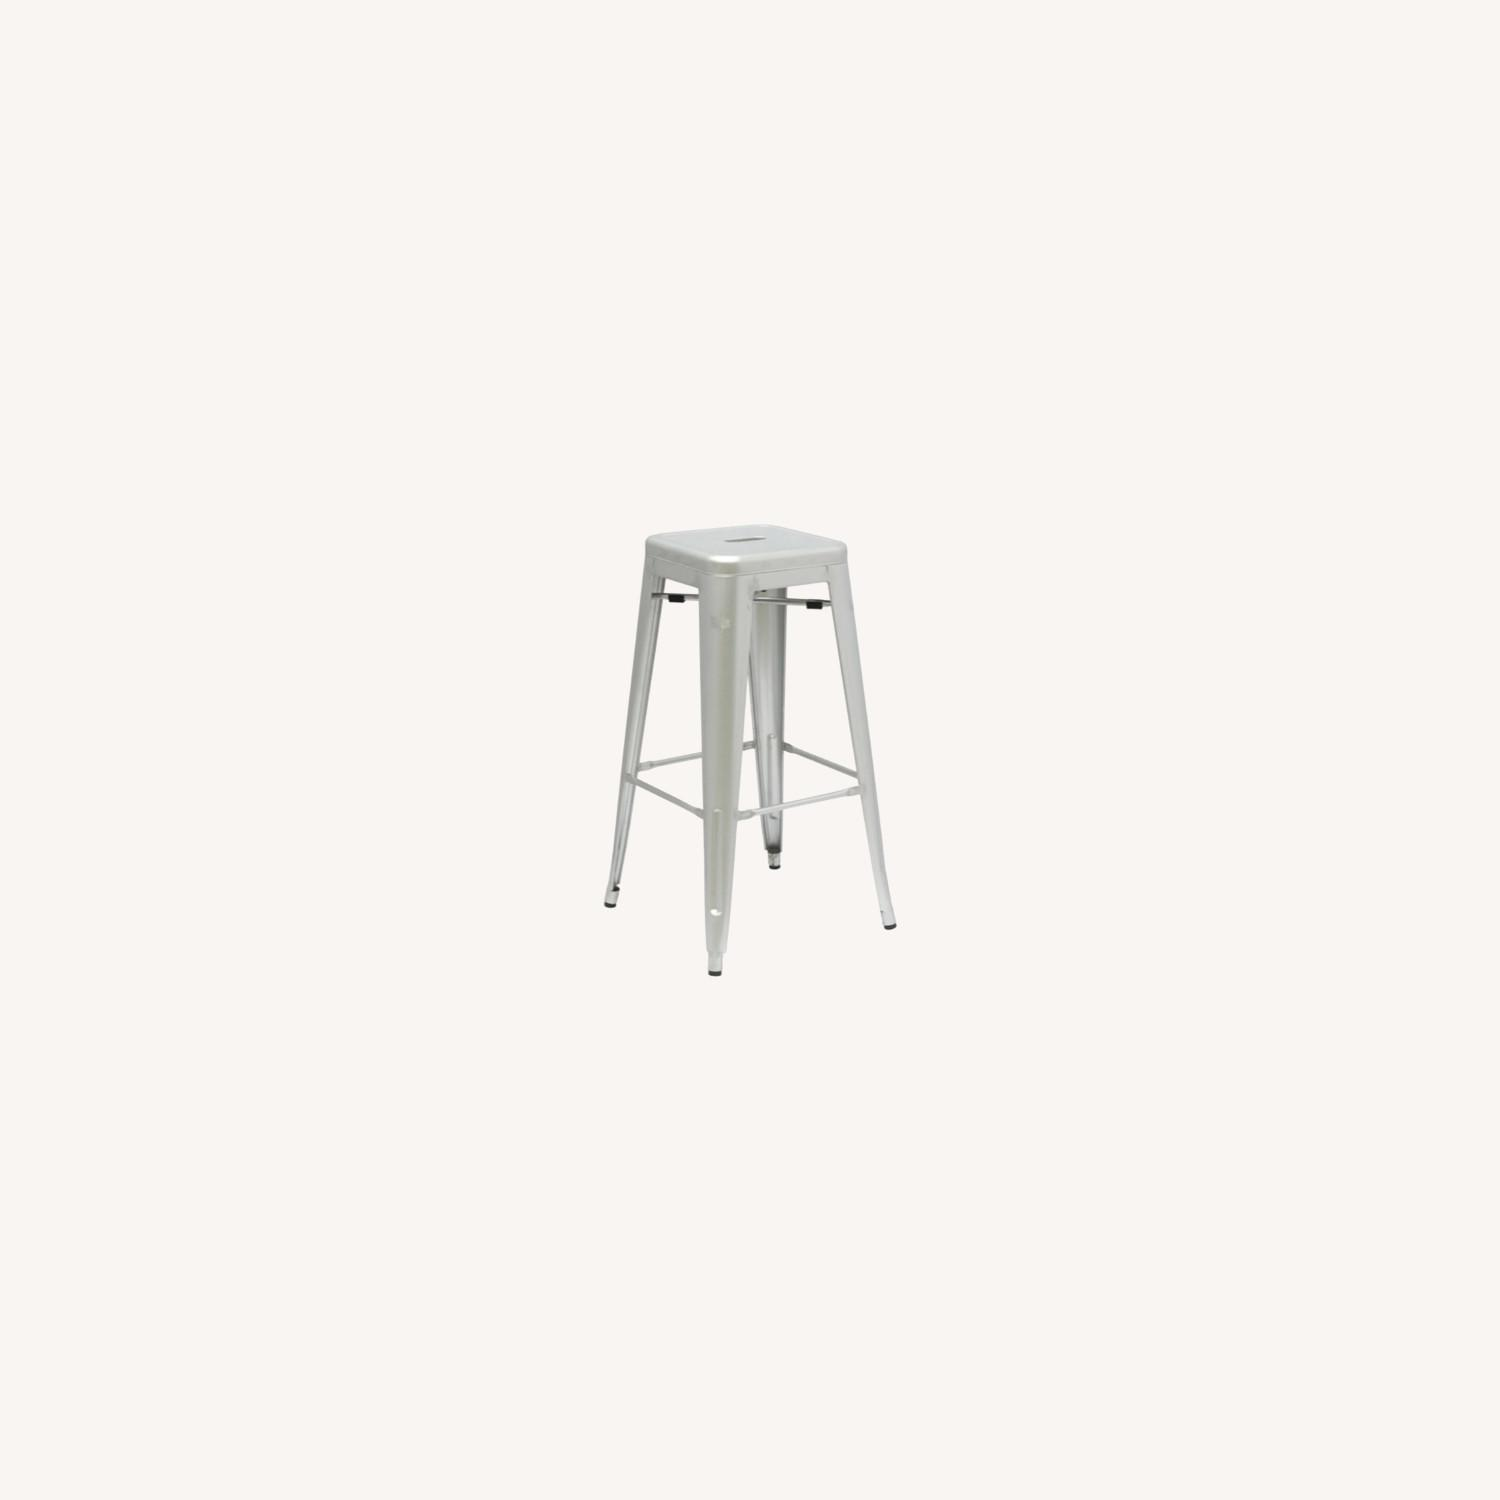 Contemporary Bar Stool In Silver Galvanized Steel - image-6